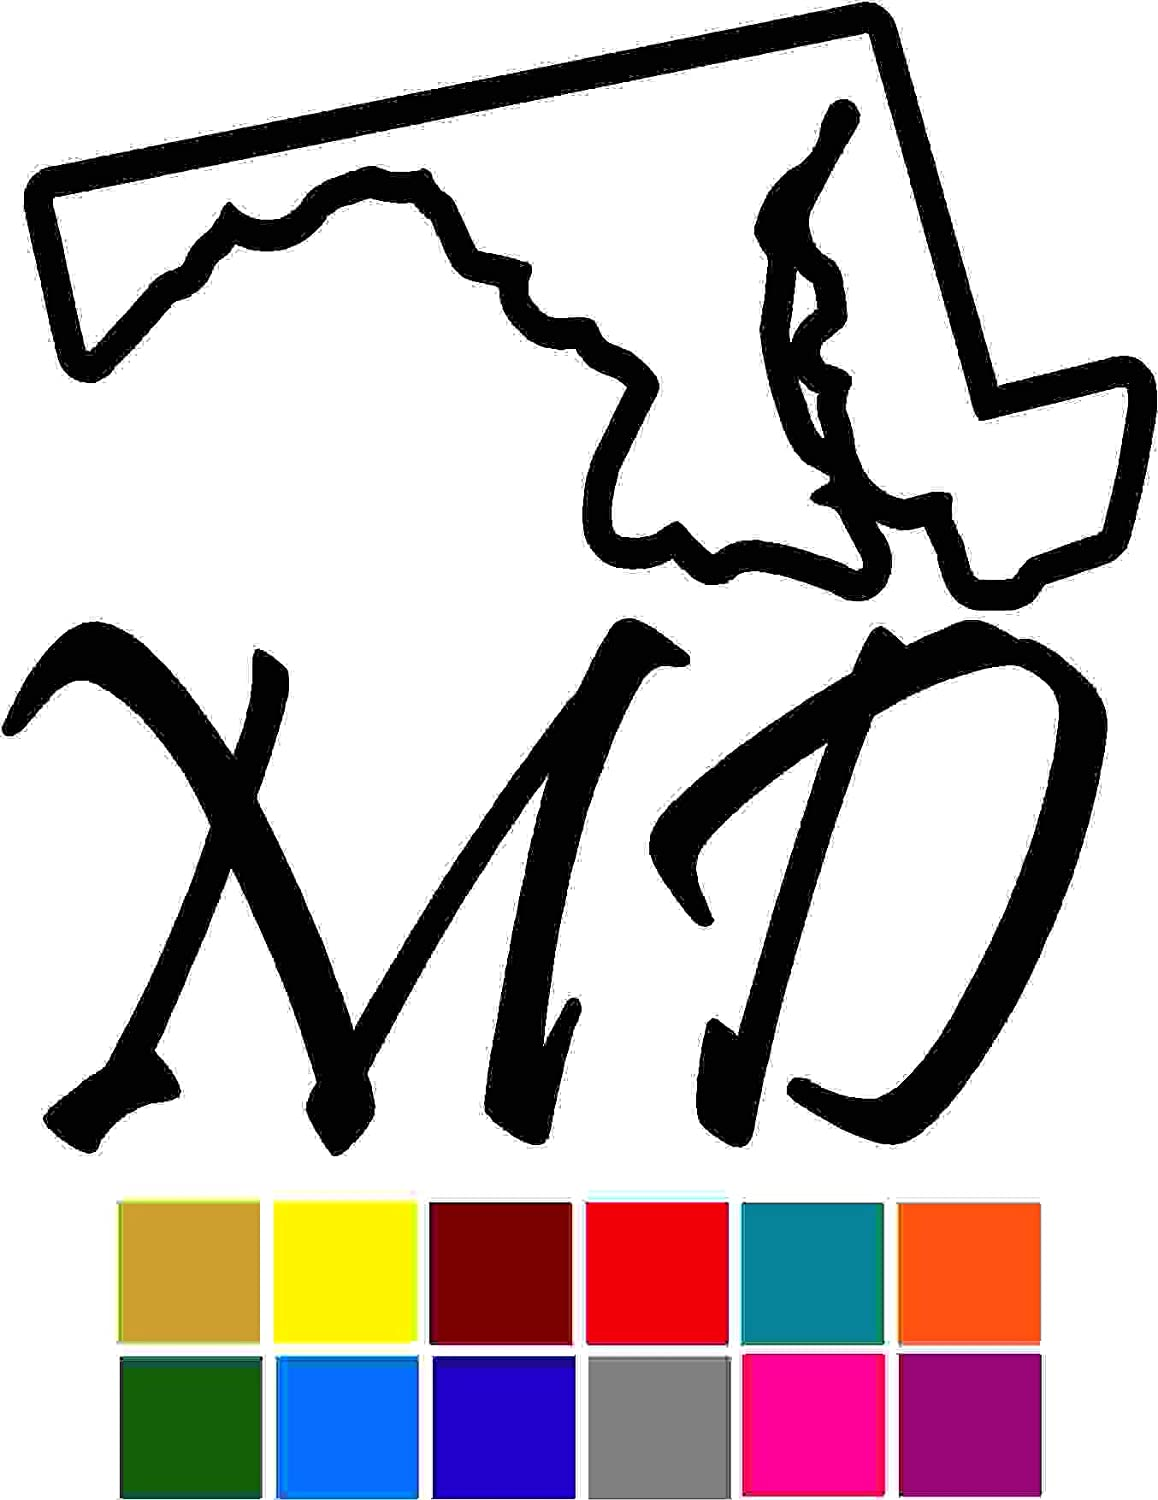 States Maryland Decal Sticker Vinyl Car Window Tumblers Wall Laptops Cellphones Phones Tablets Ipads Helmets Motorcycles Computer Towers V and T Gifts